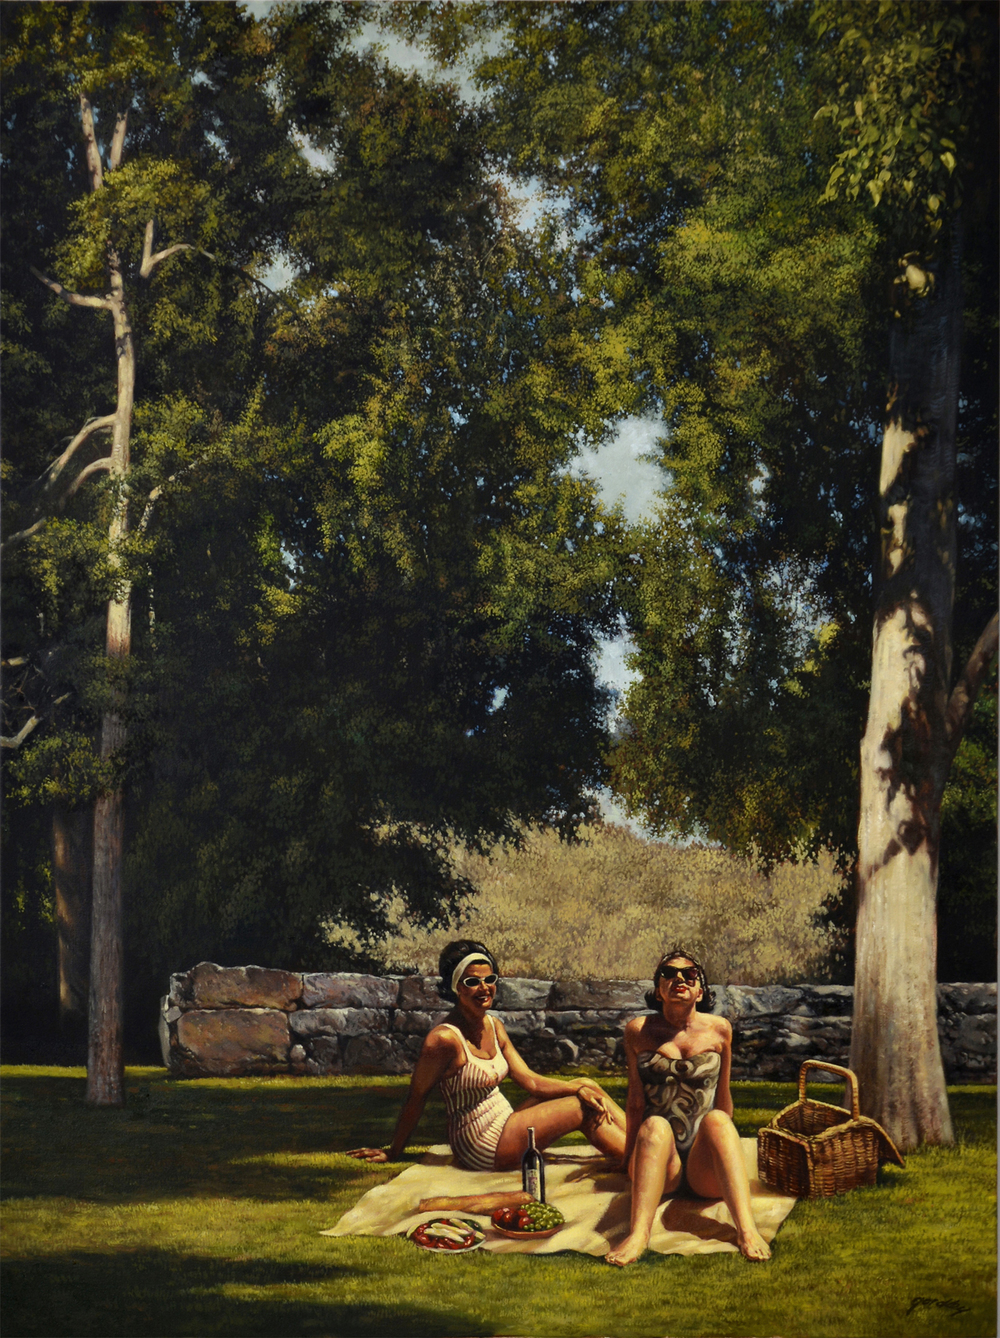 Afternoon Retreat, oil on canvas, 48 x 36 in.